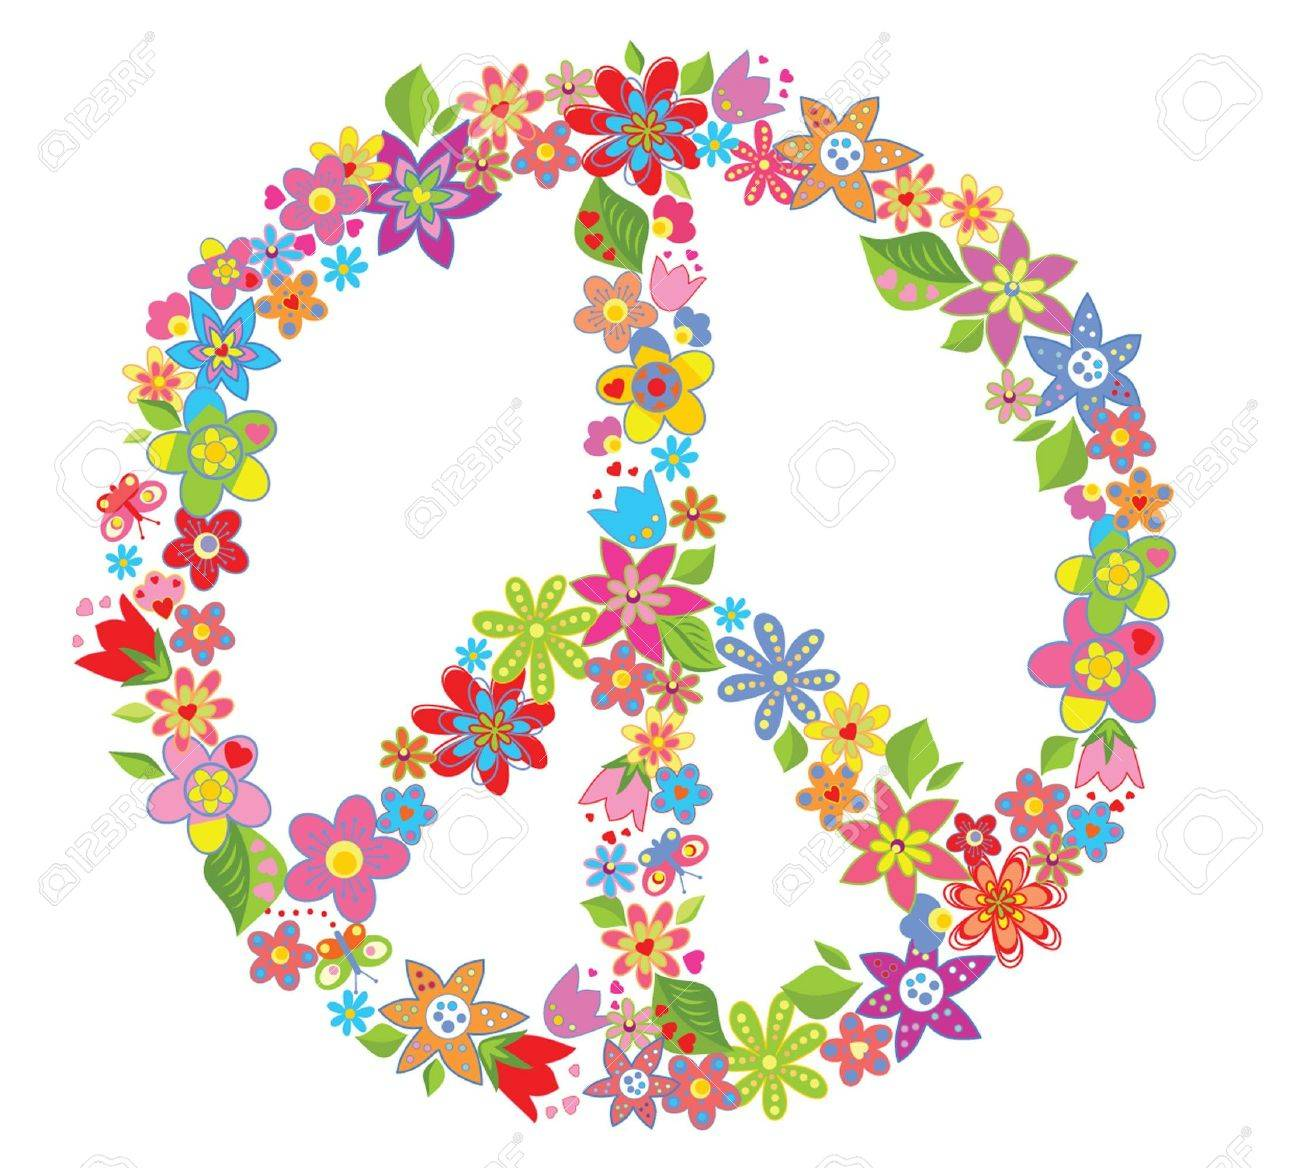 Peace Flower Symbol Royalty Free Cliparts Vectors And Stock